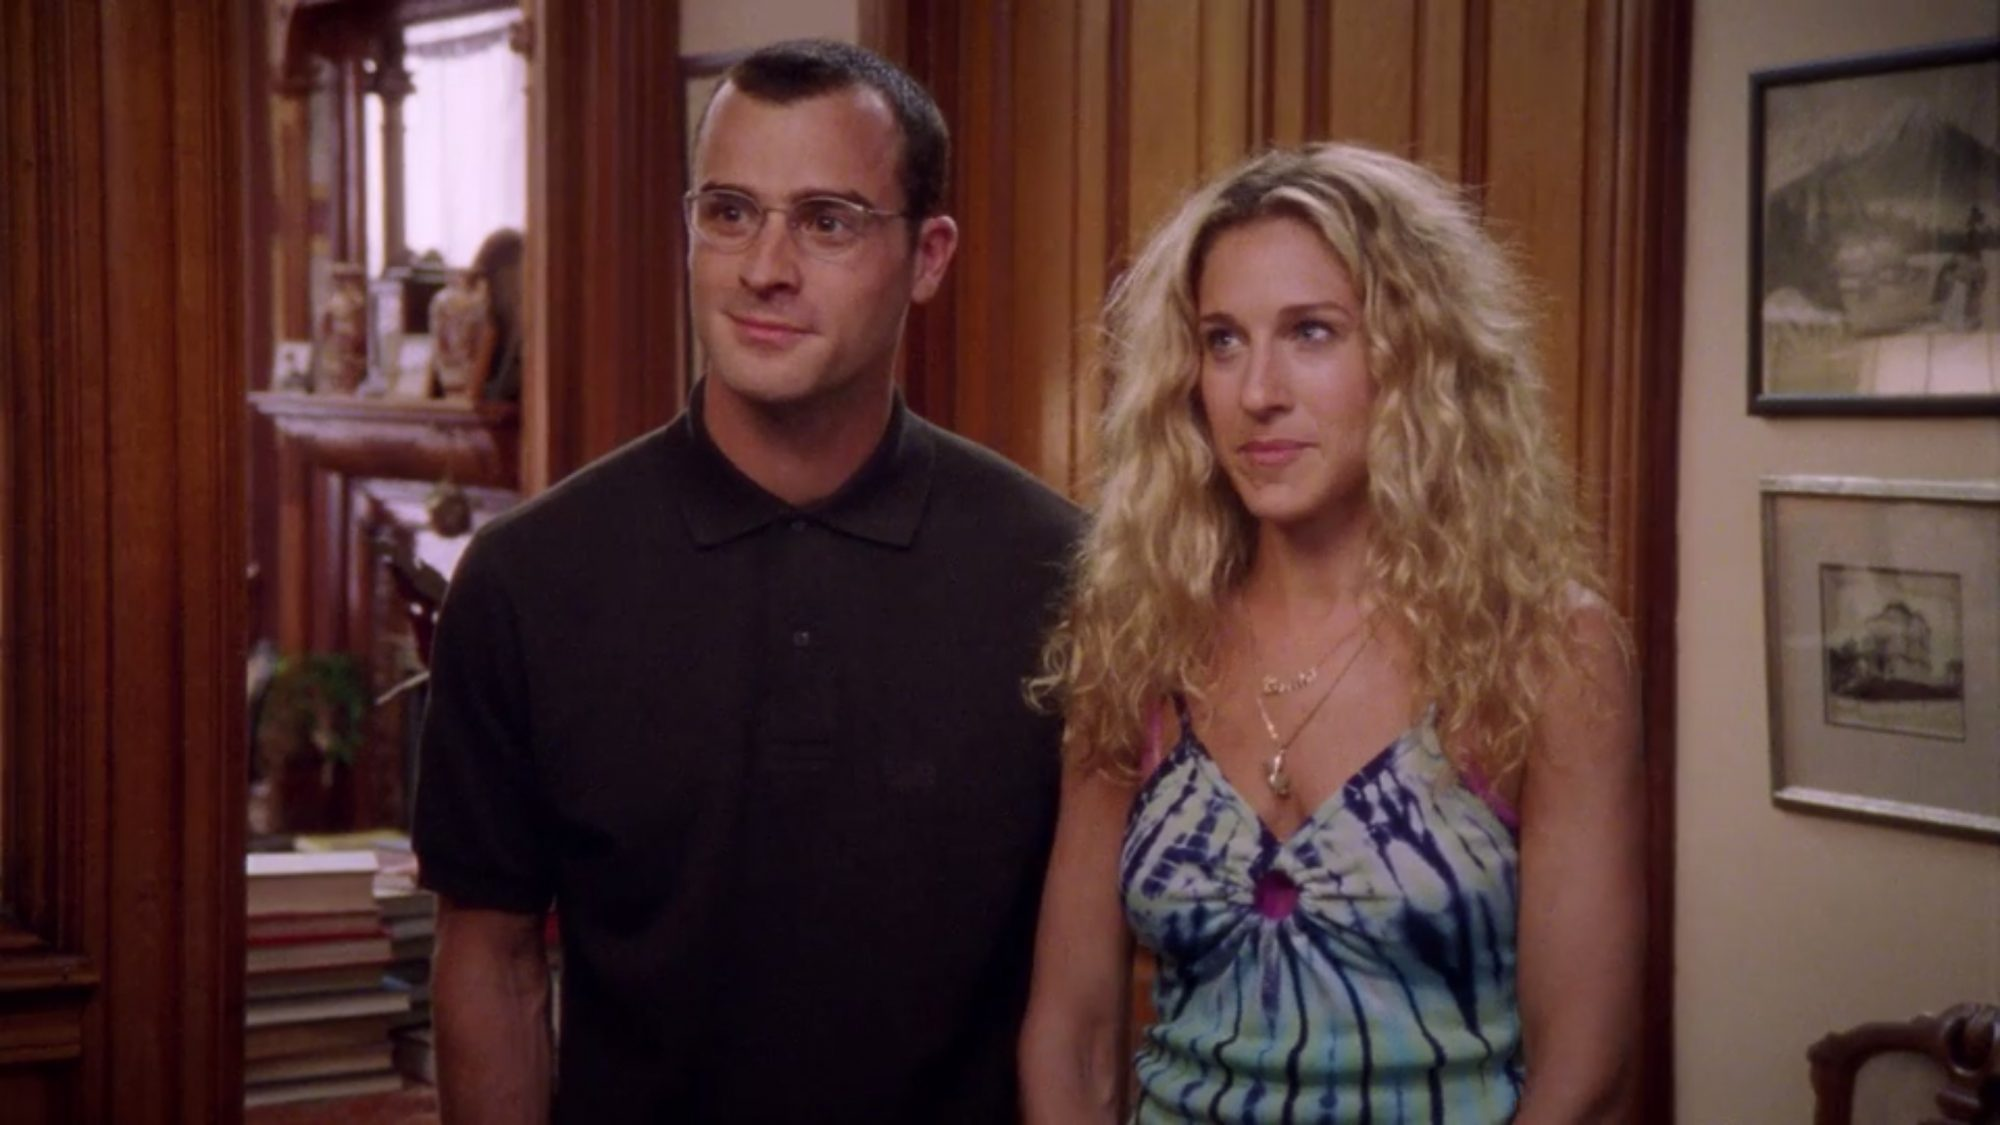 Sex and the City Season 2, Episode 15 Justin Theroux and Sarah Jessica Parker